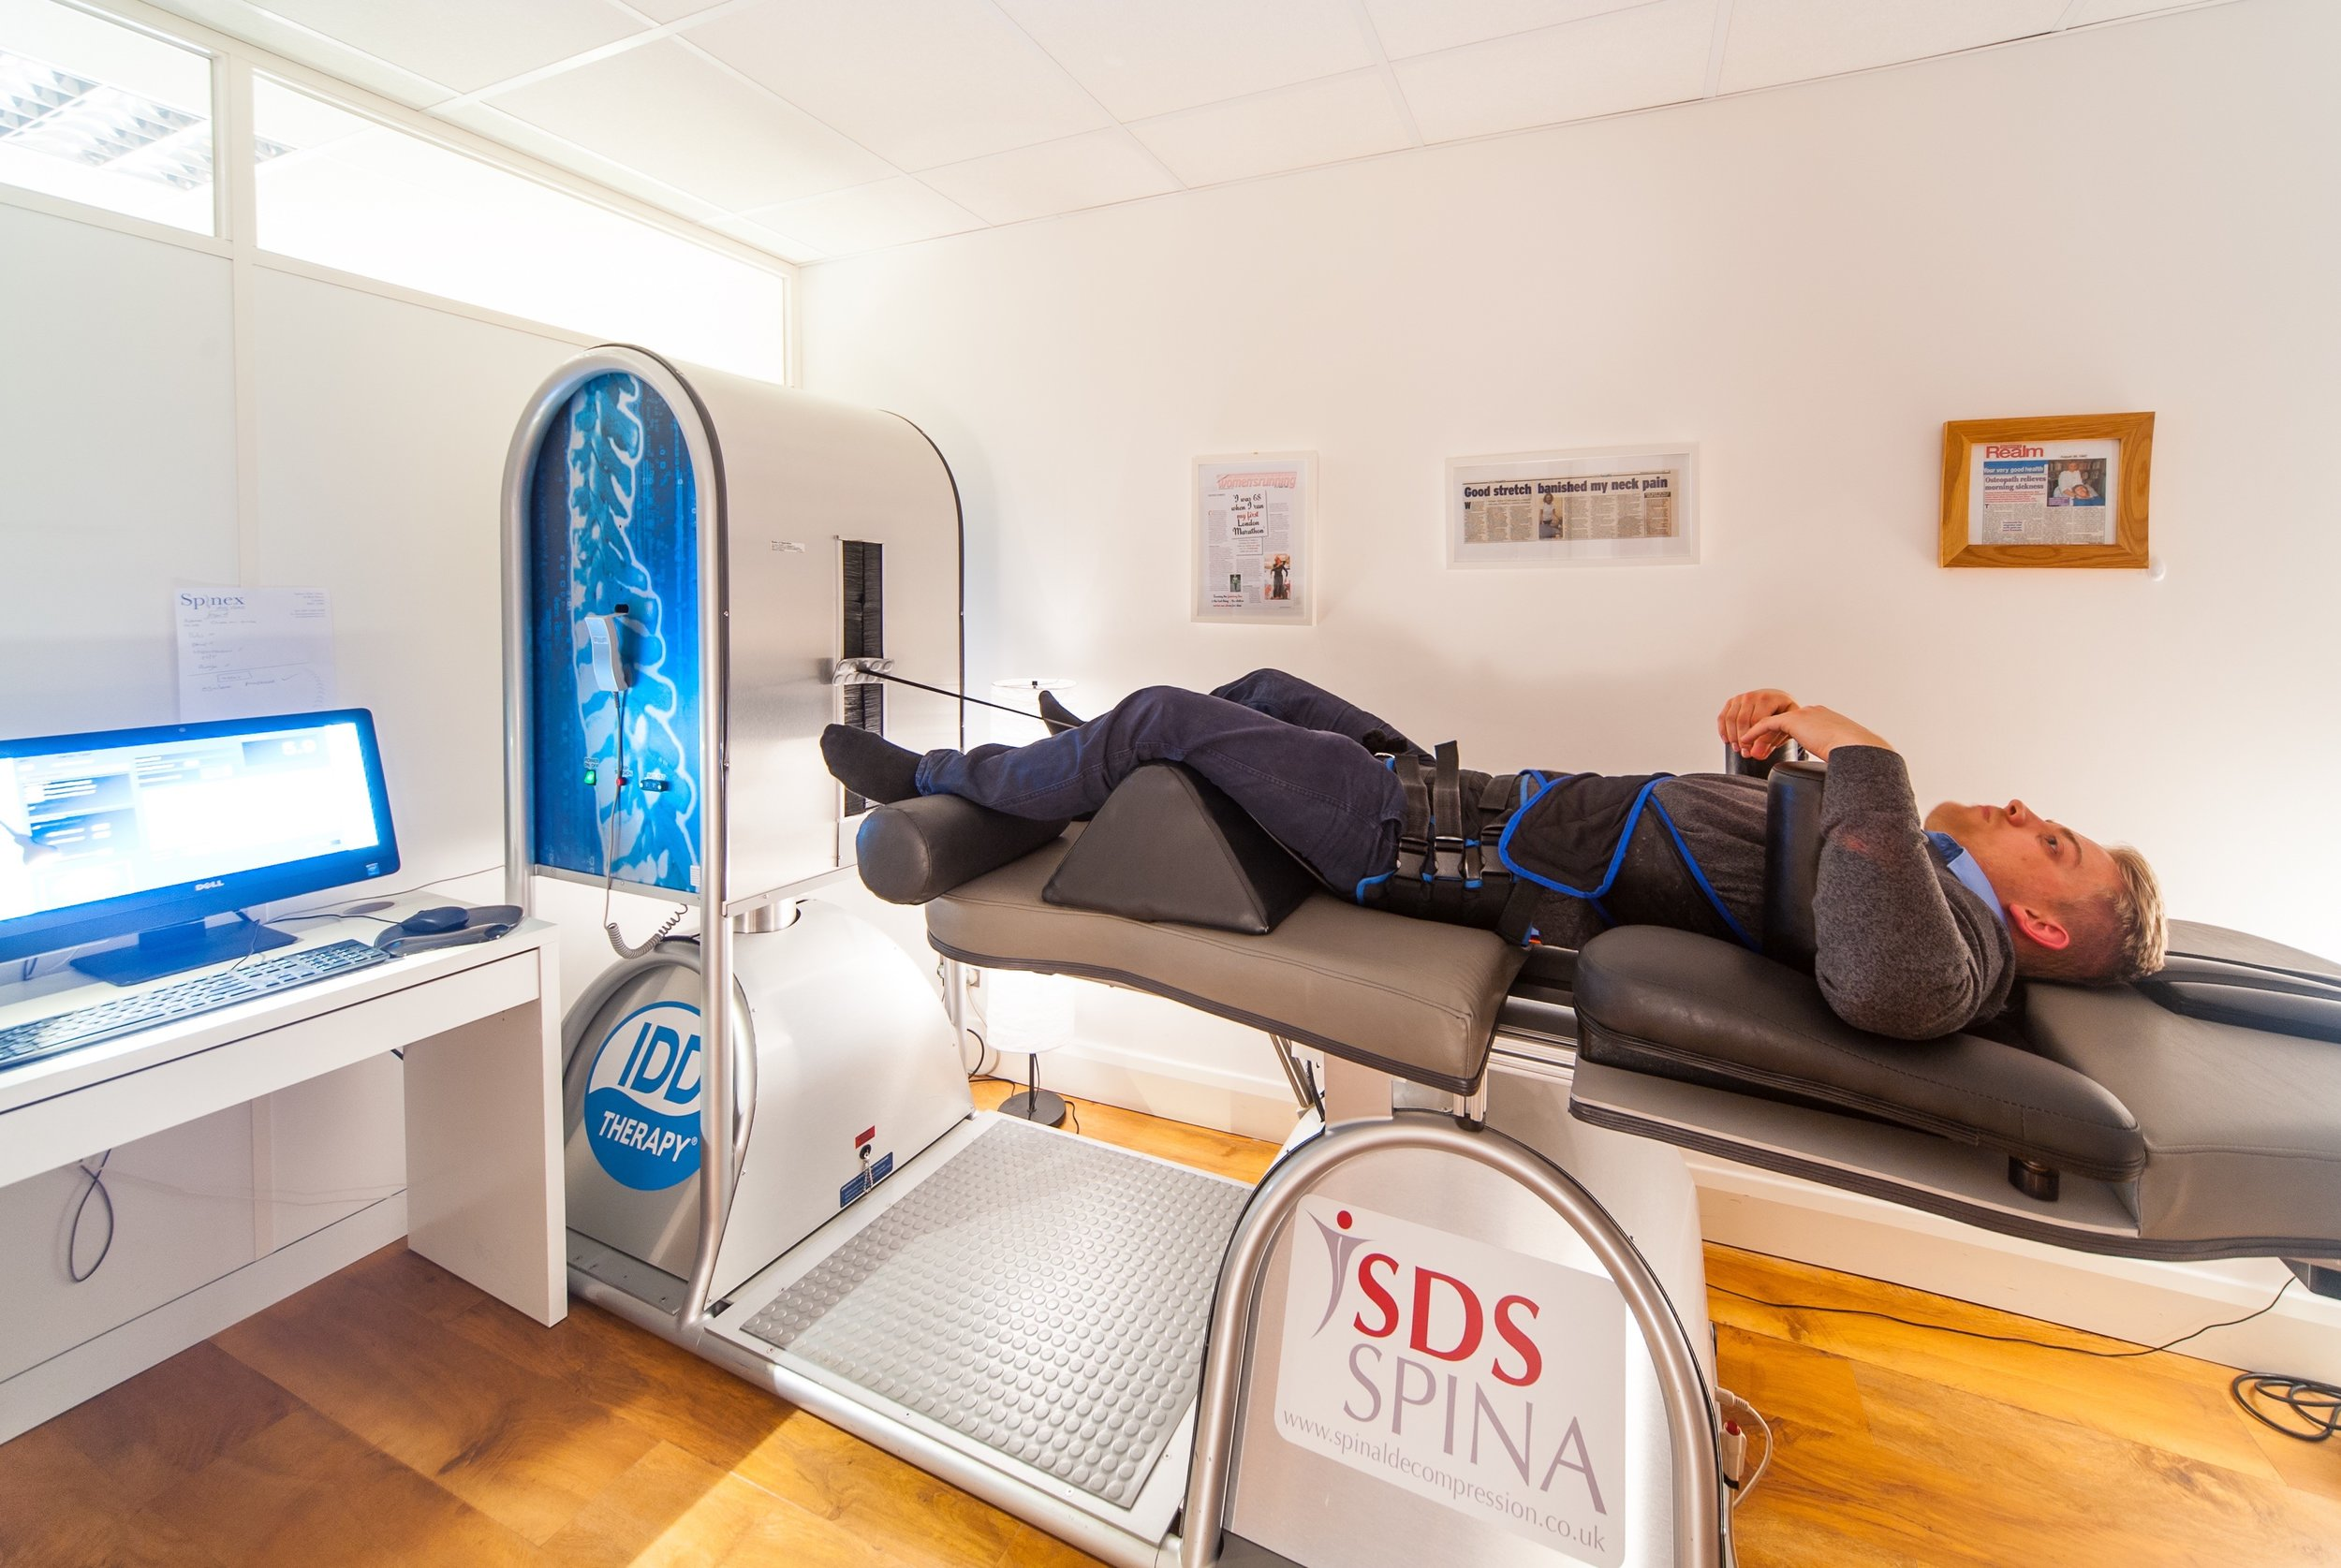 IDD Therapy at Spinex Disc Clinic 2018.jpg